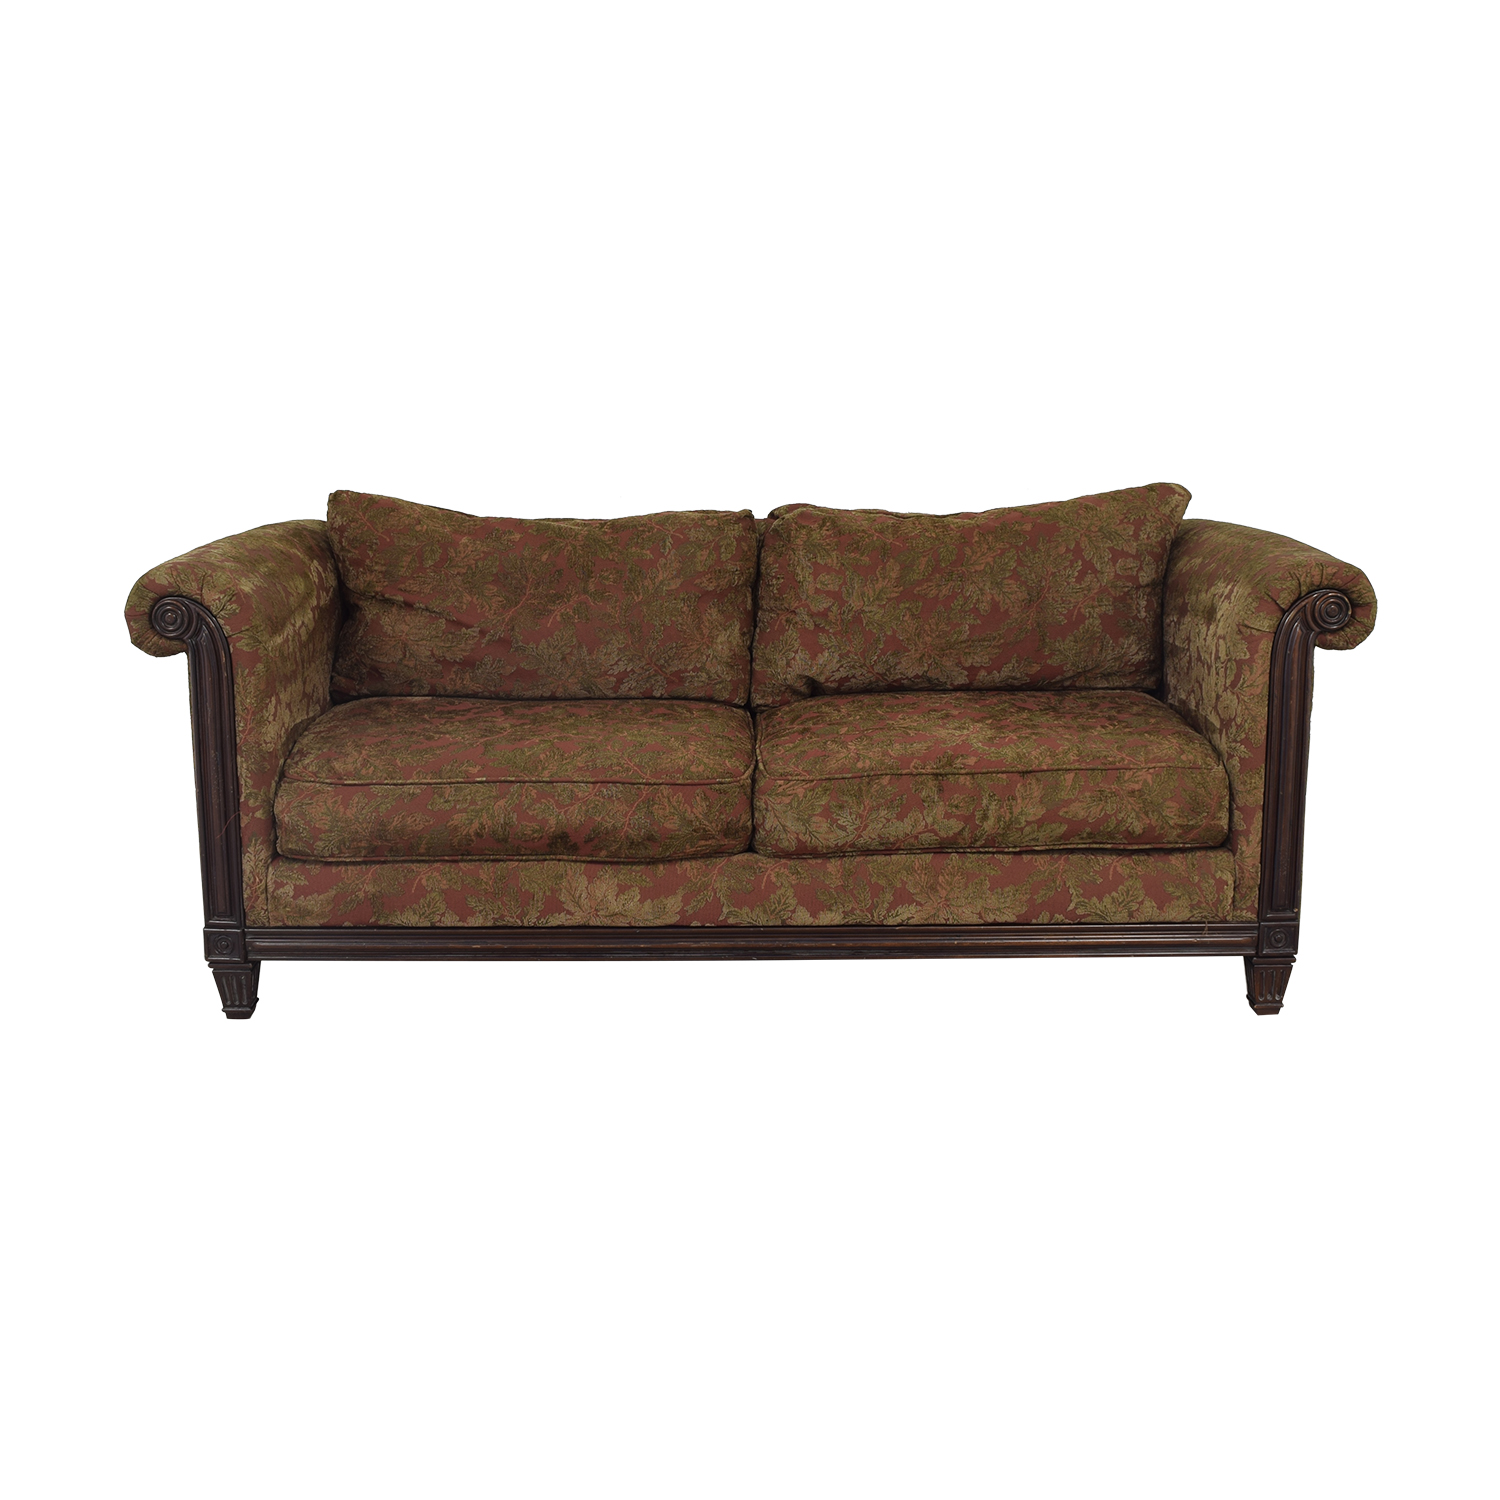 Macy's Macy's by Bernhardt Two Cushion Sofa